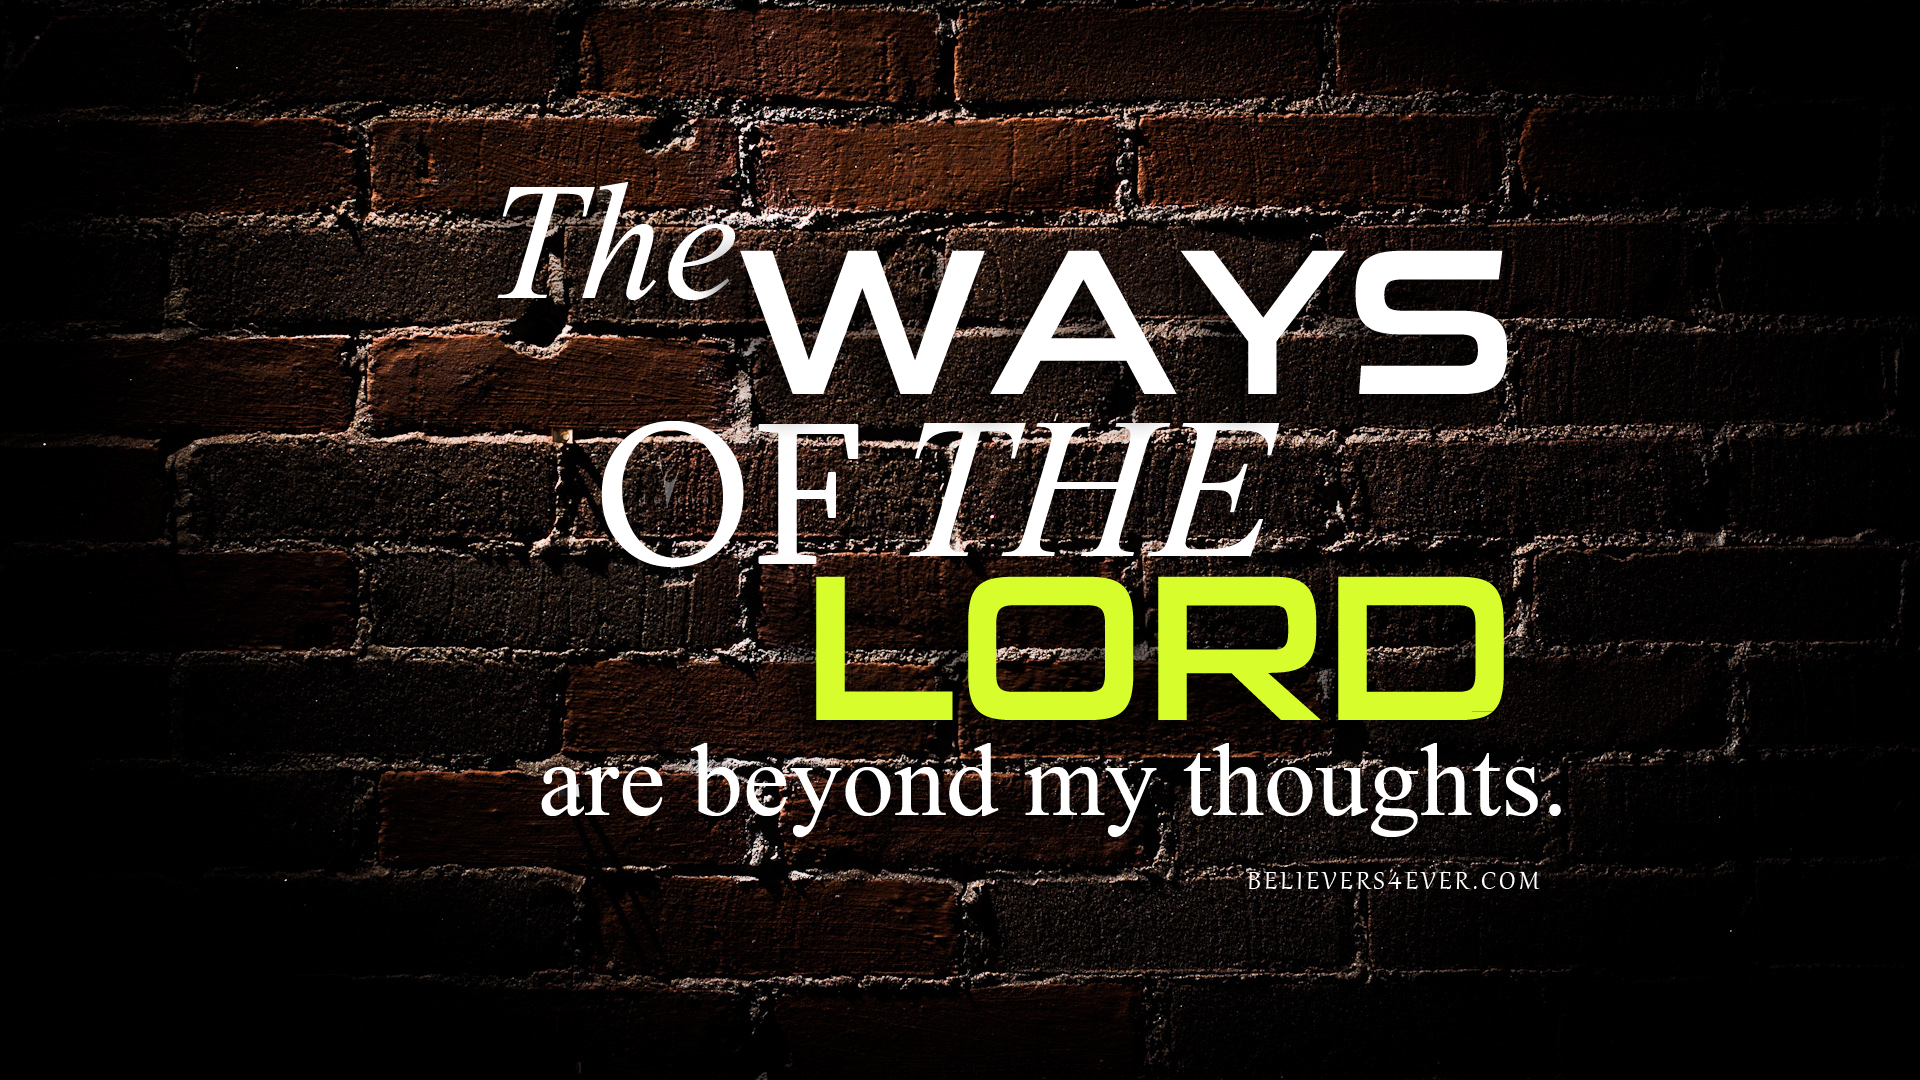 The ways of the Lord are beyond my thoughts